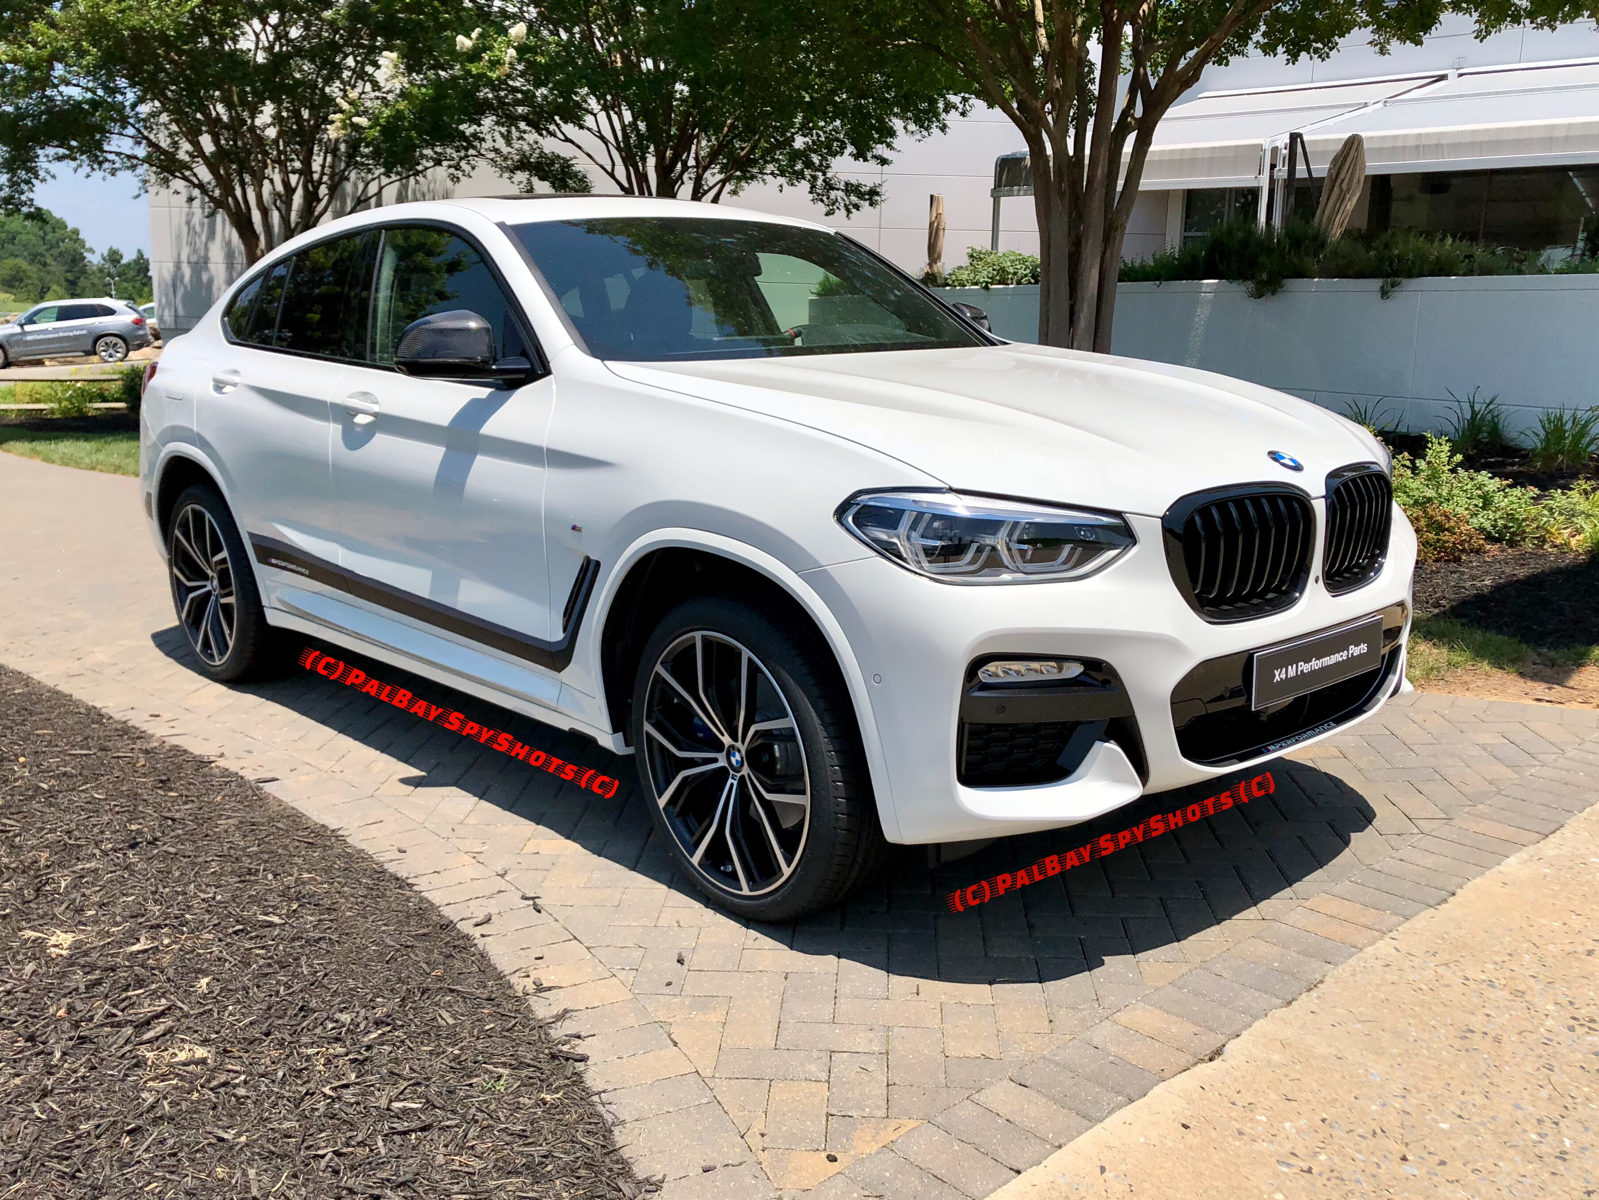 new pictures of the 2019 x4 m40i and m performance parts. Black Bedroom Furniture Sets. Home Design Ideas